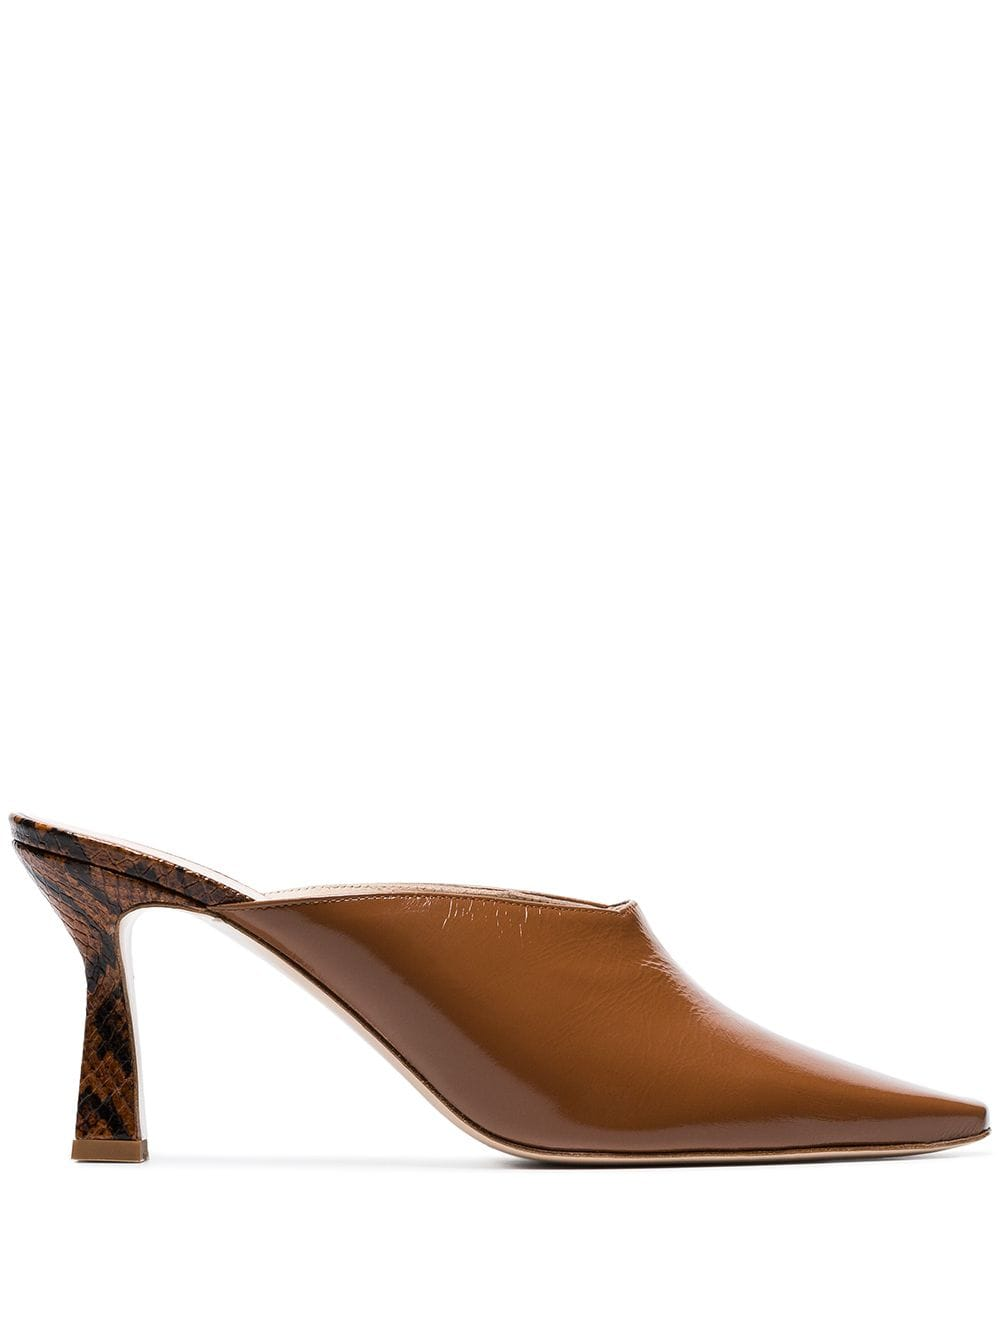 731833a87704c Wandler Lotte 75 mules - Brown in 2019 | Products | Leather mules ...